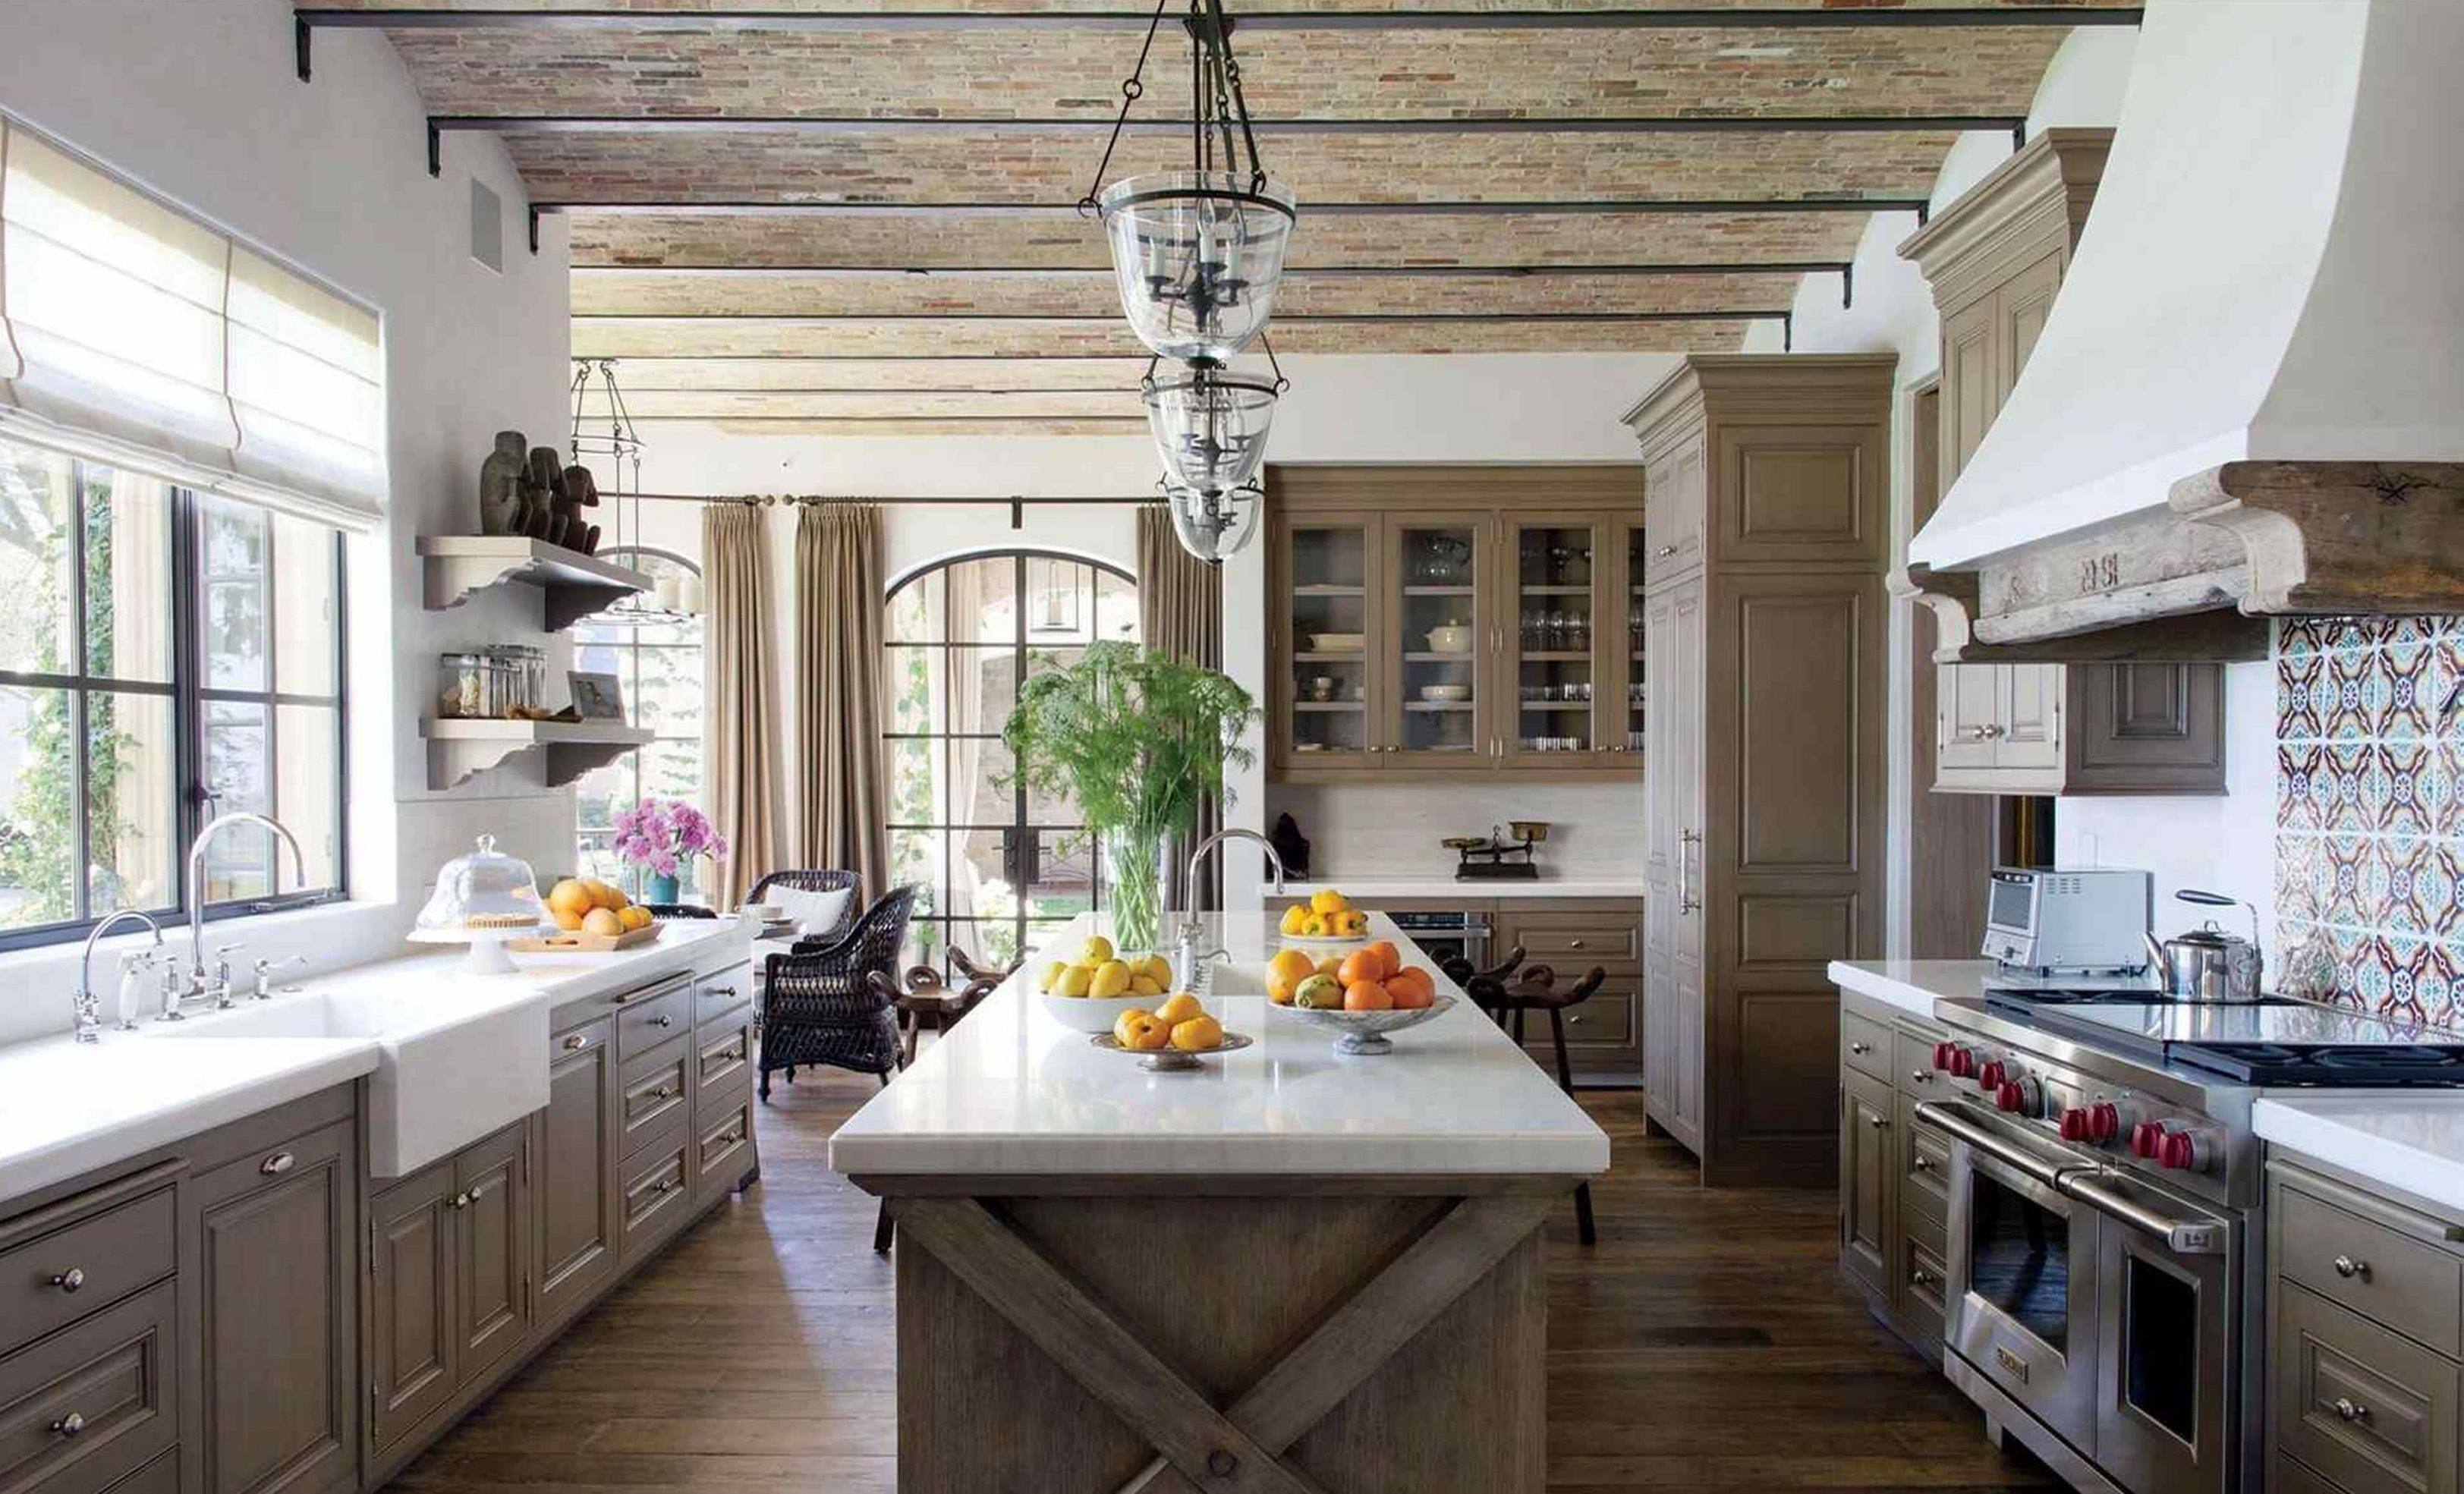 top 10 awesome farmhouse kitchen design ideas to make on best farmhouse kitchen decor ideas and remodel create your dreams id=28076